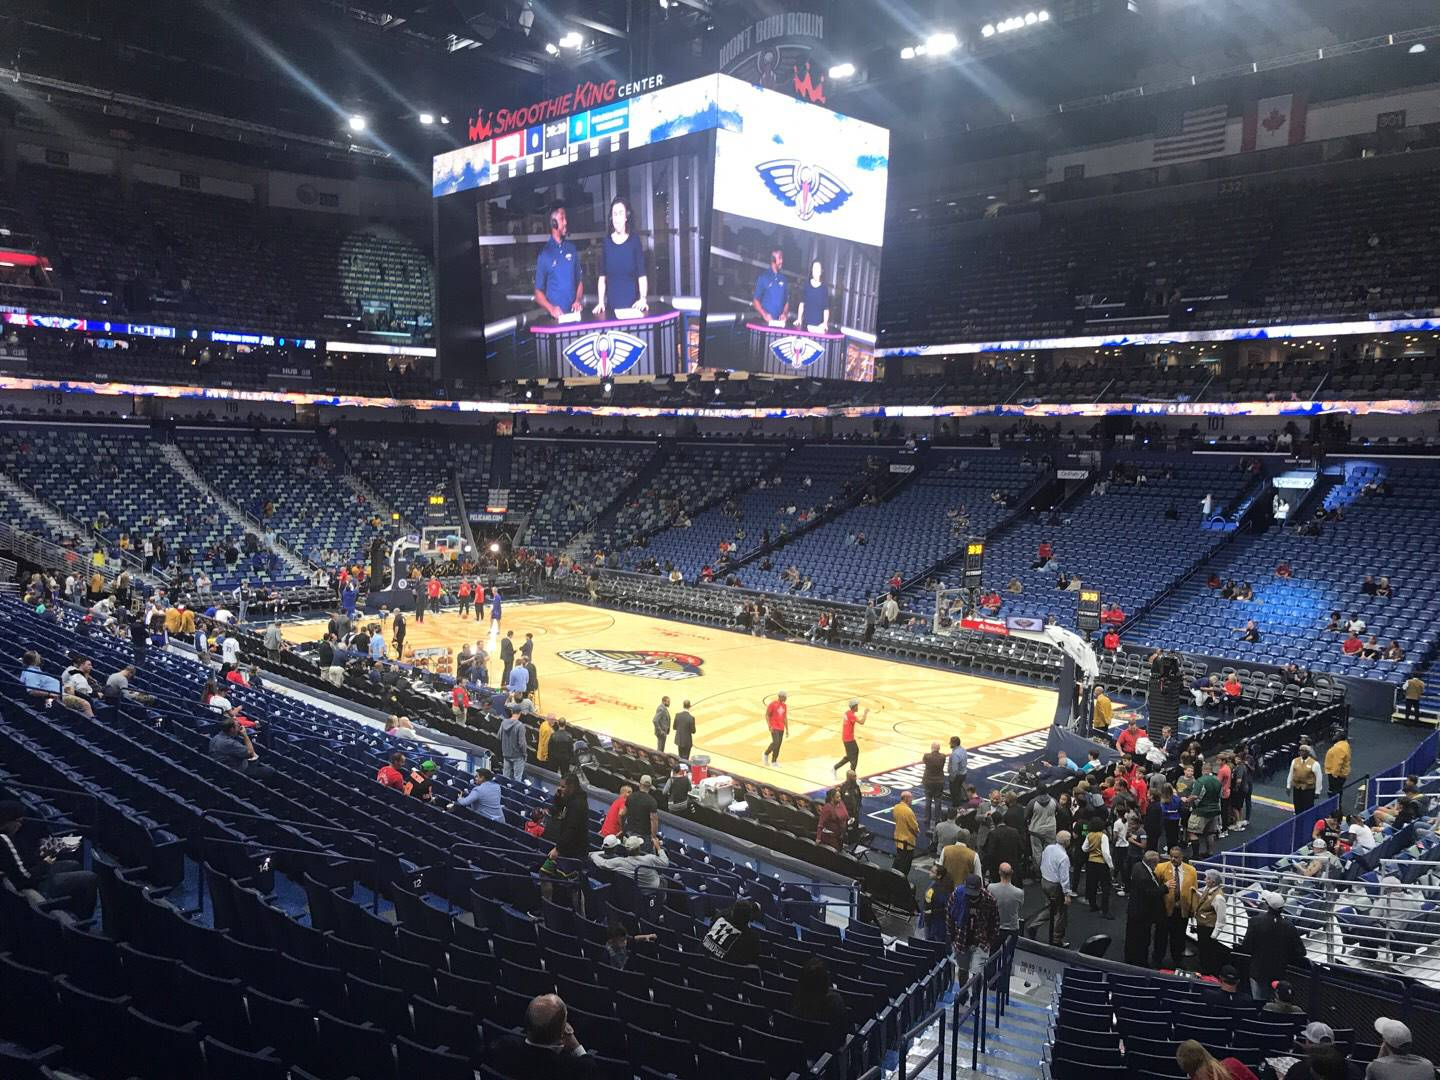 Smoothie King Center Section 109 Row 23 Seat 20